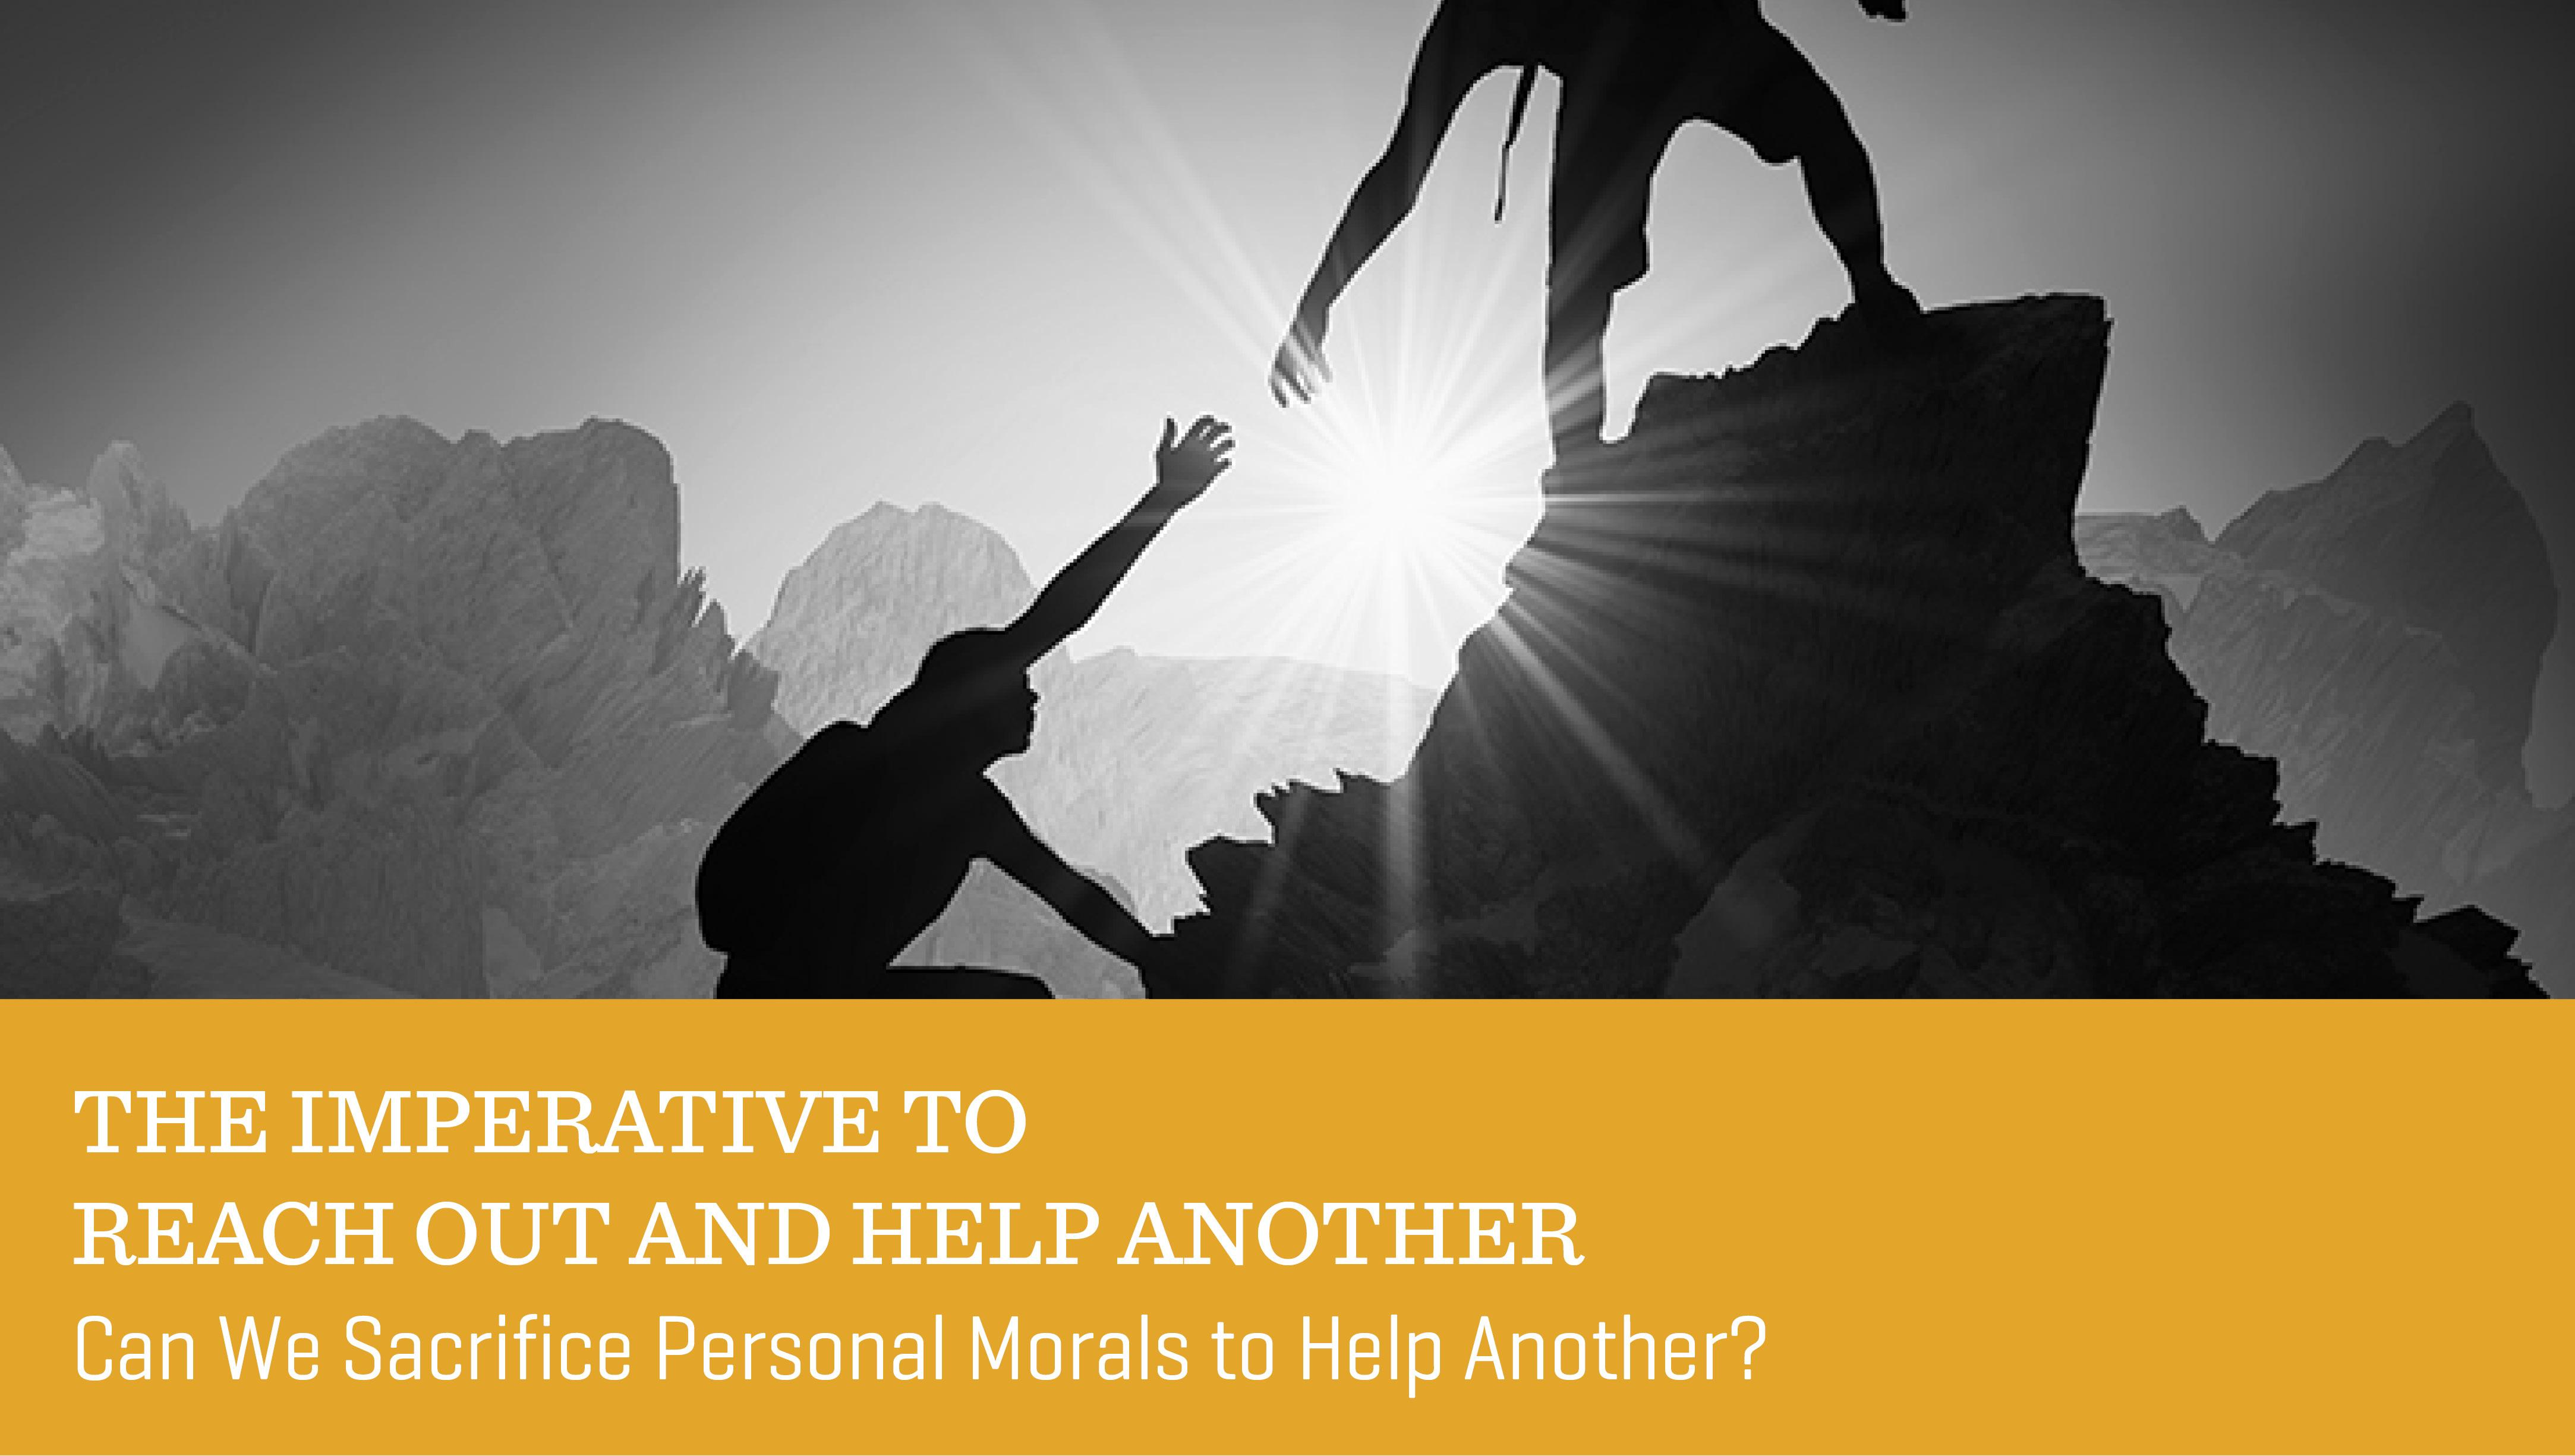 The Imperative to Reach Out and Help Another